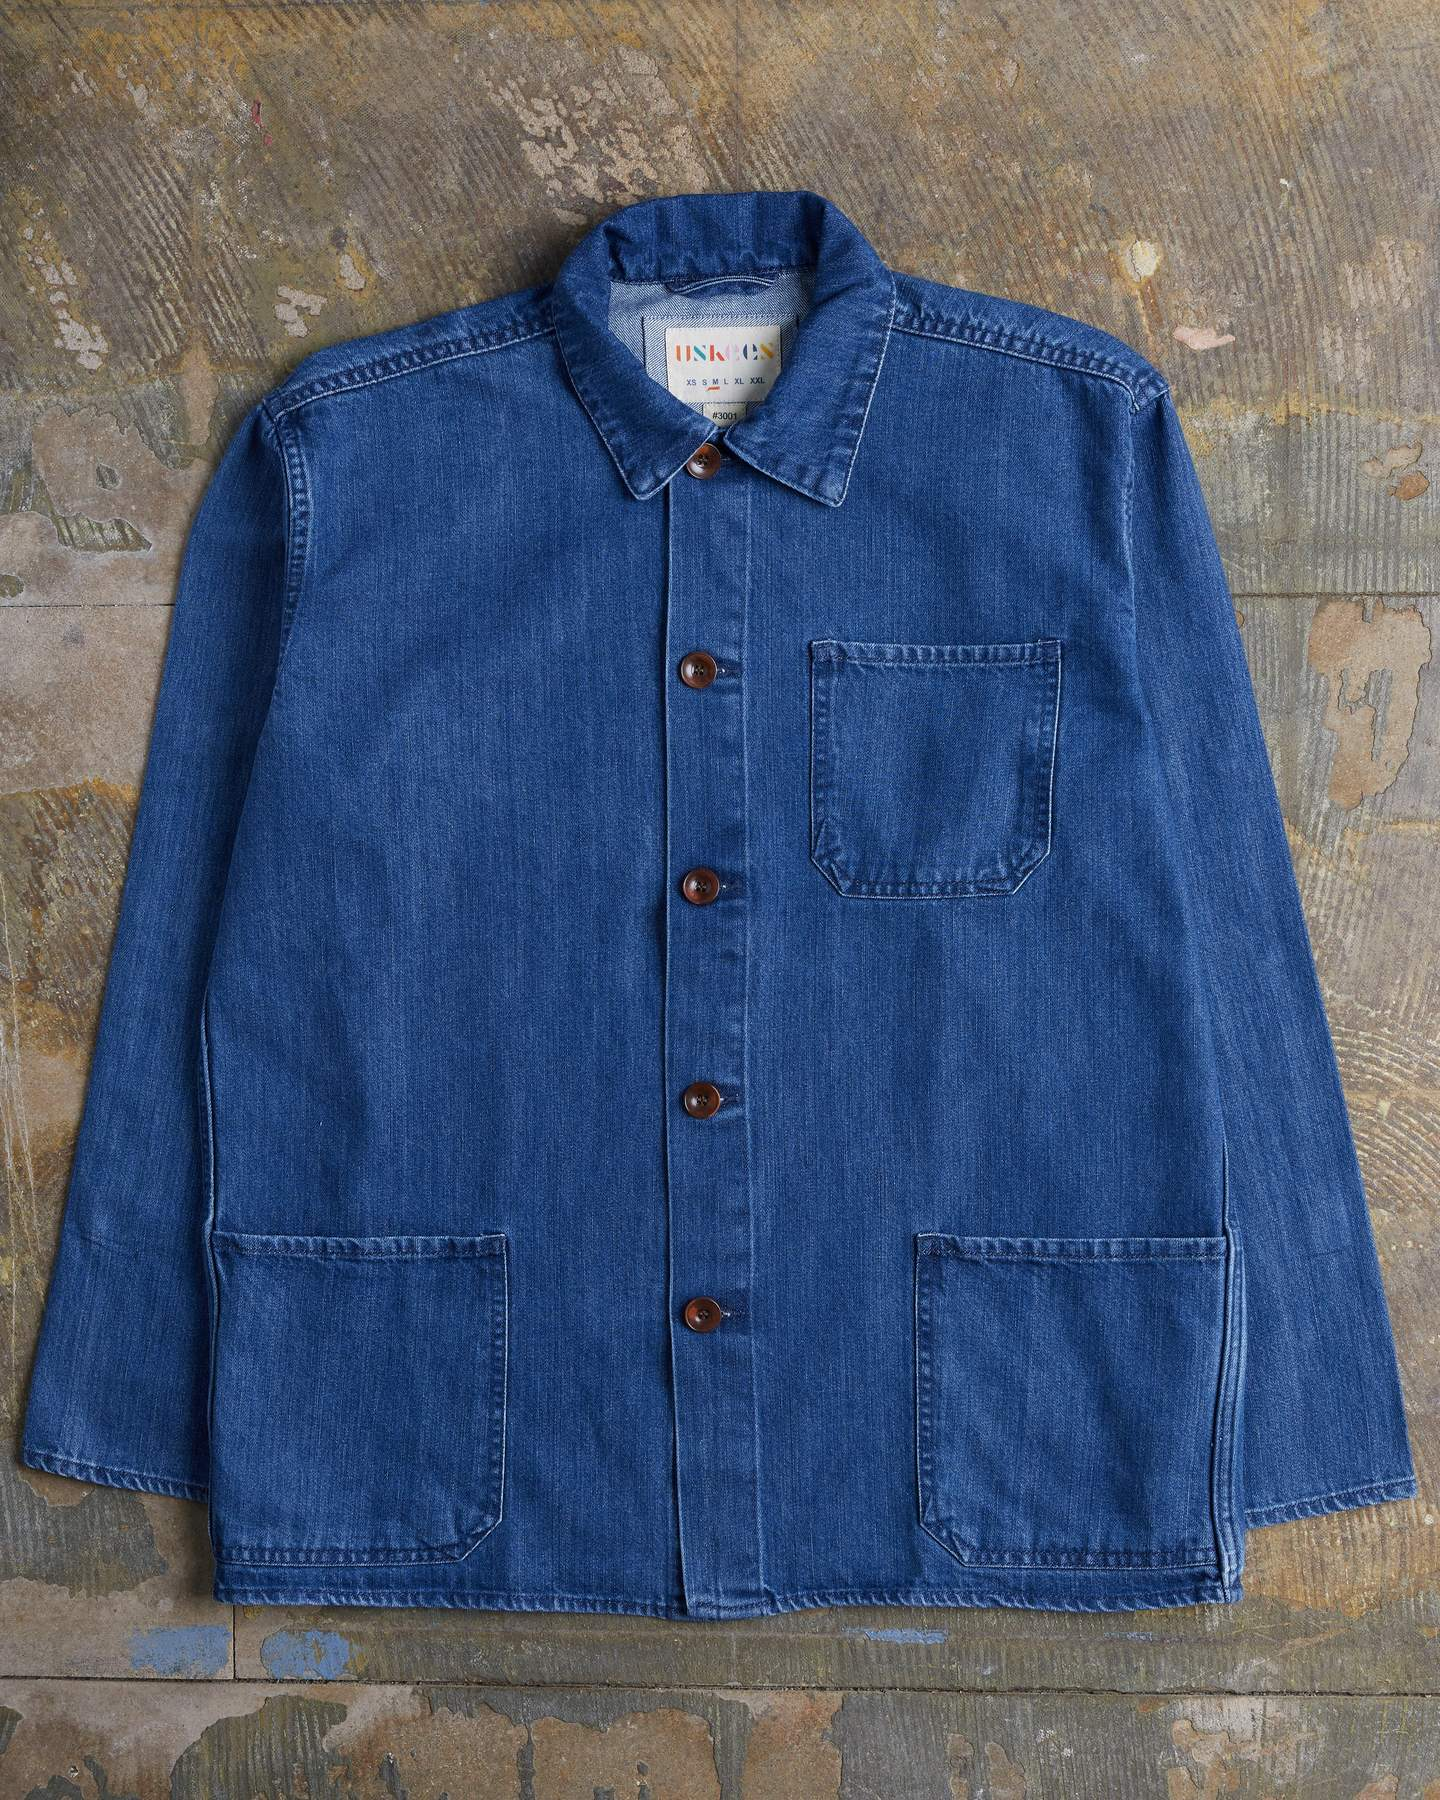 USKEES The #3001 Buttoned Overshirt in Washed Denim